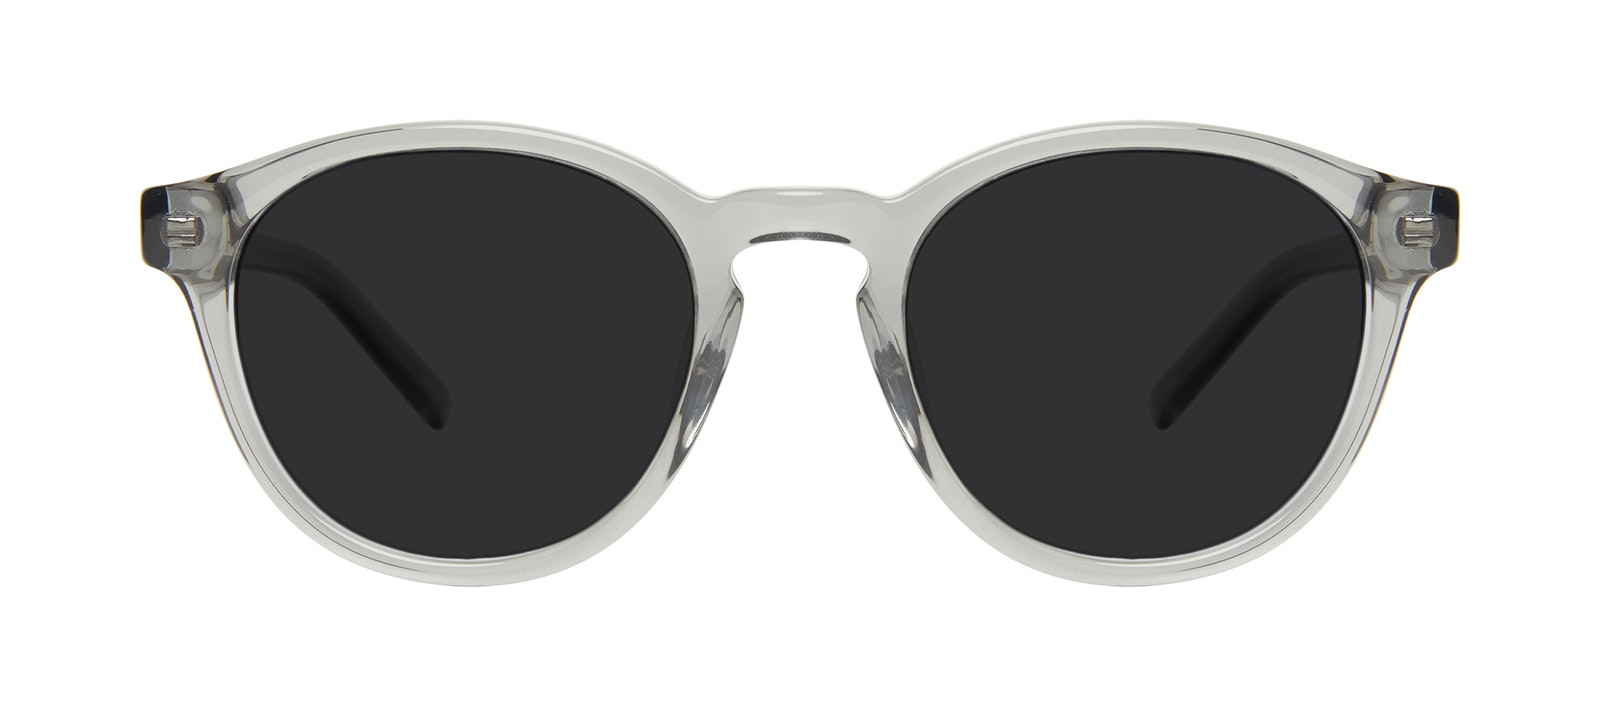 Affordable Fashion Glasses Round Sunglasses Men Gent Storm Front